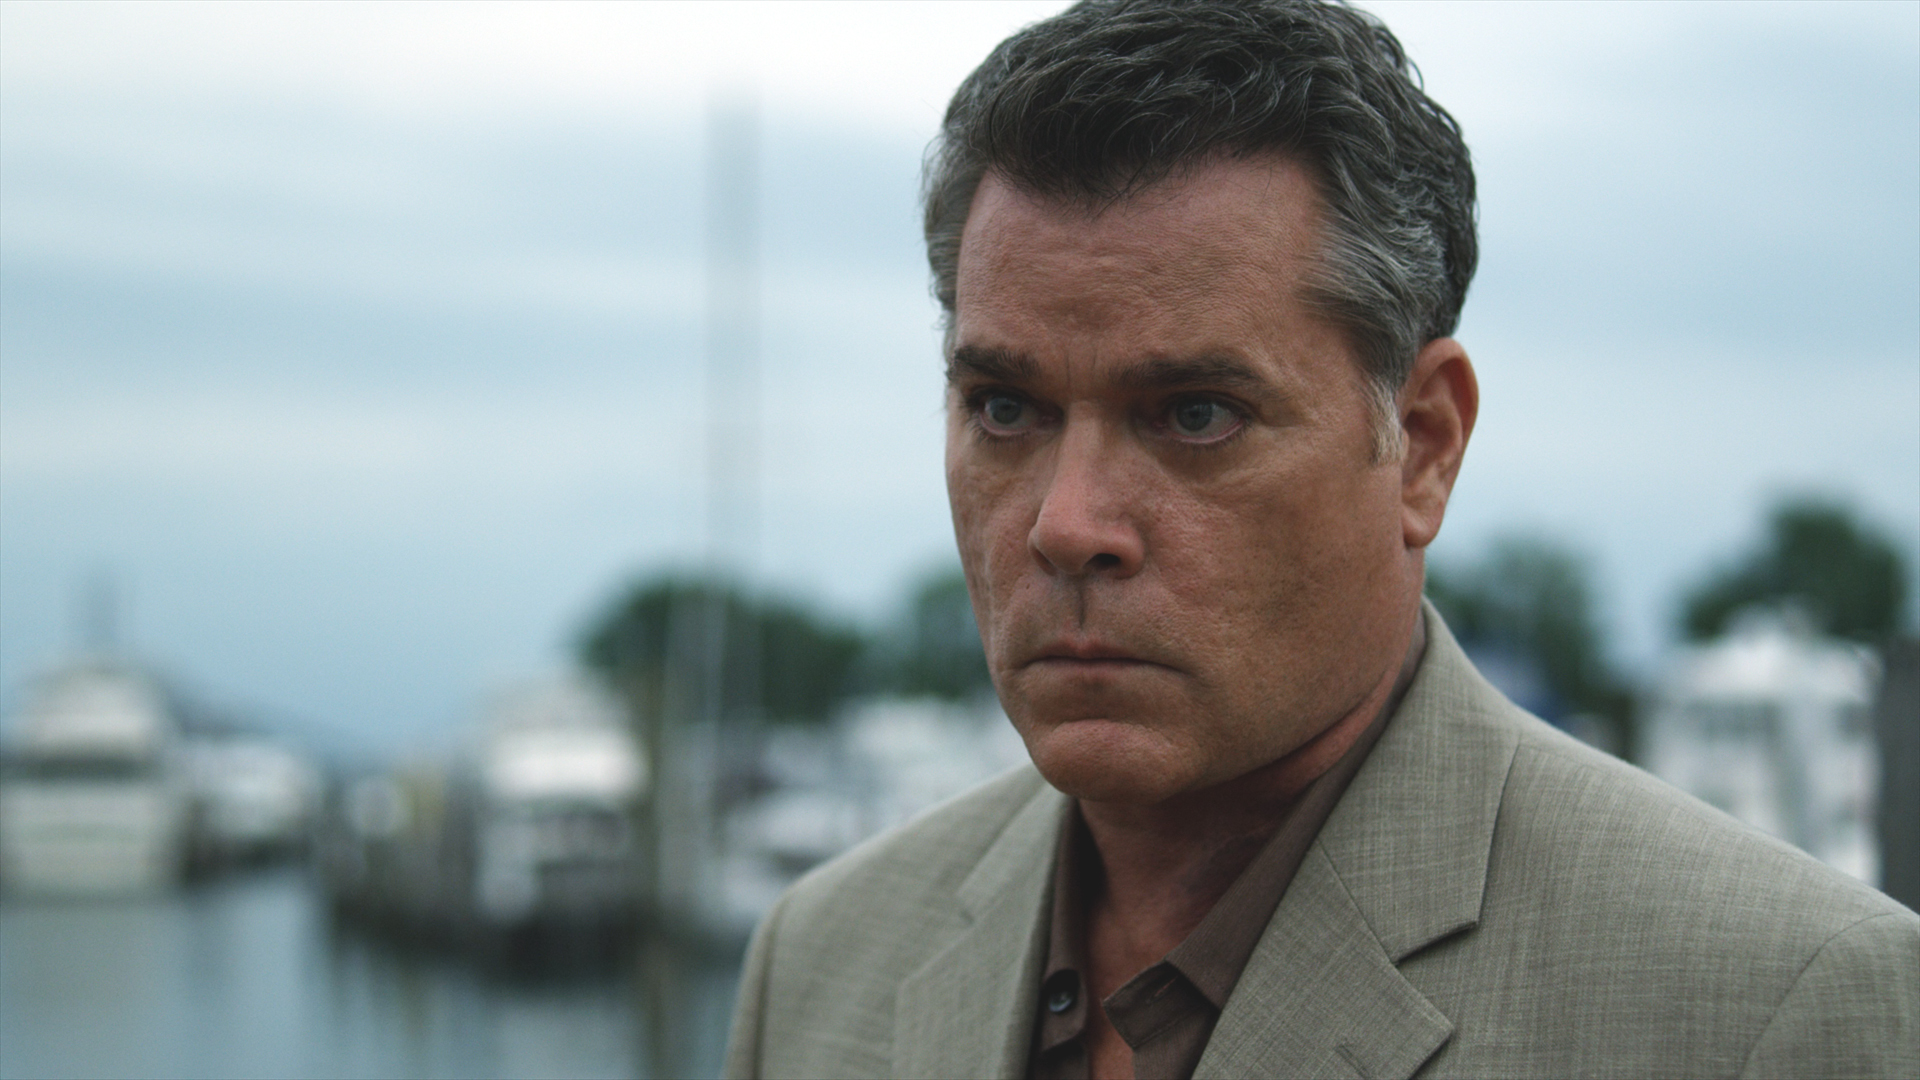 Kings Fall Wallpaper Ray Liotta Will Become An Old Man For Upcoming Noir